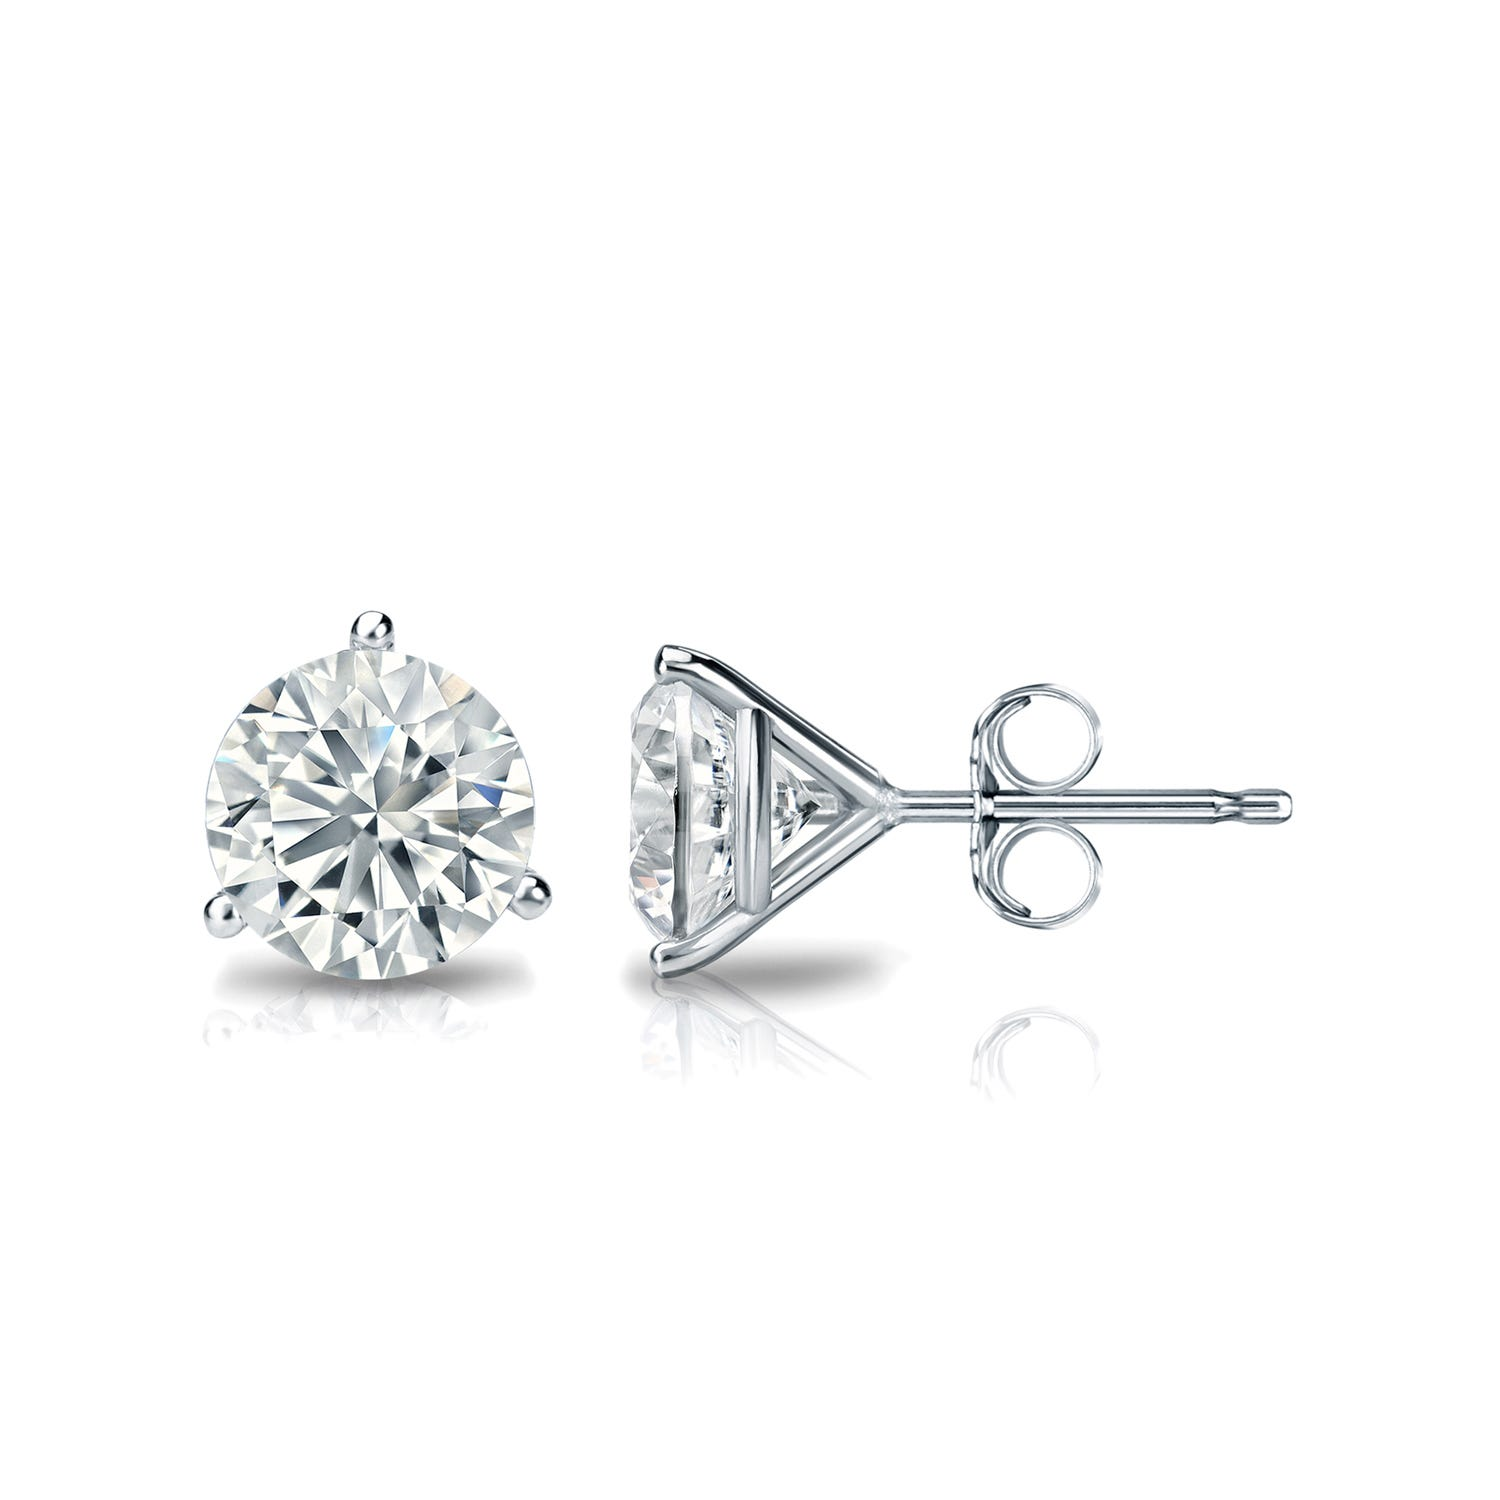 1 CTTW Round Diamond Solitaire Stud Earrings IJ SI1 in 14K White Gold IGI Certified 3-Prong Setting